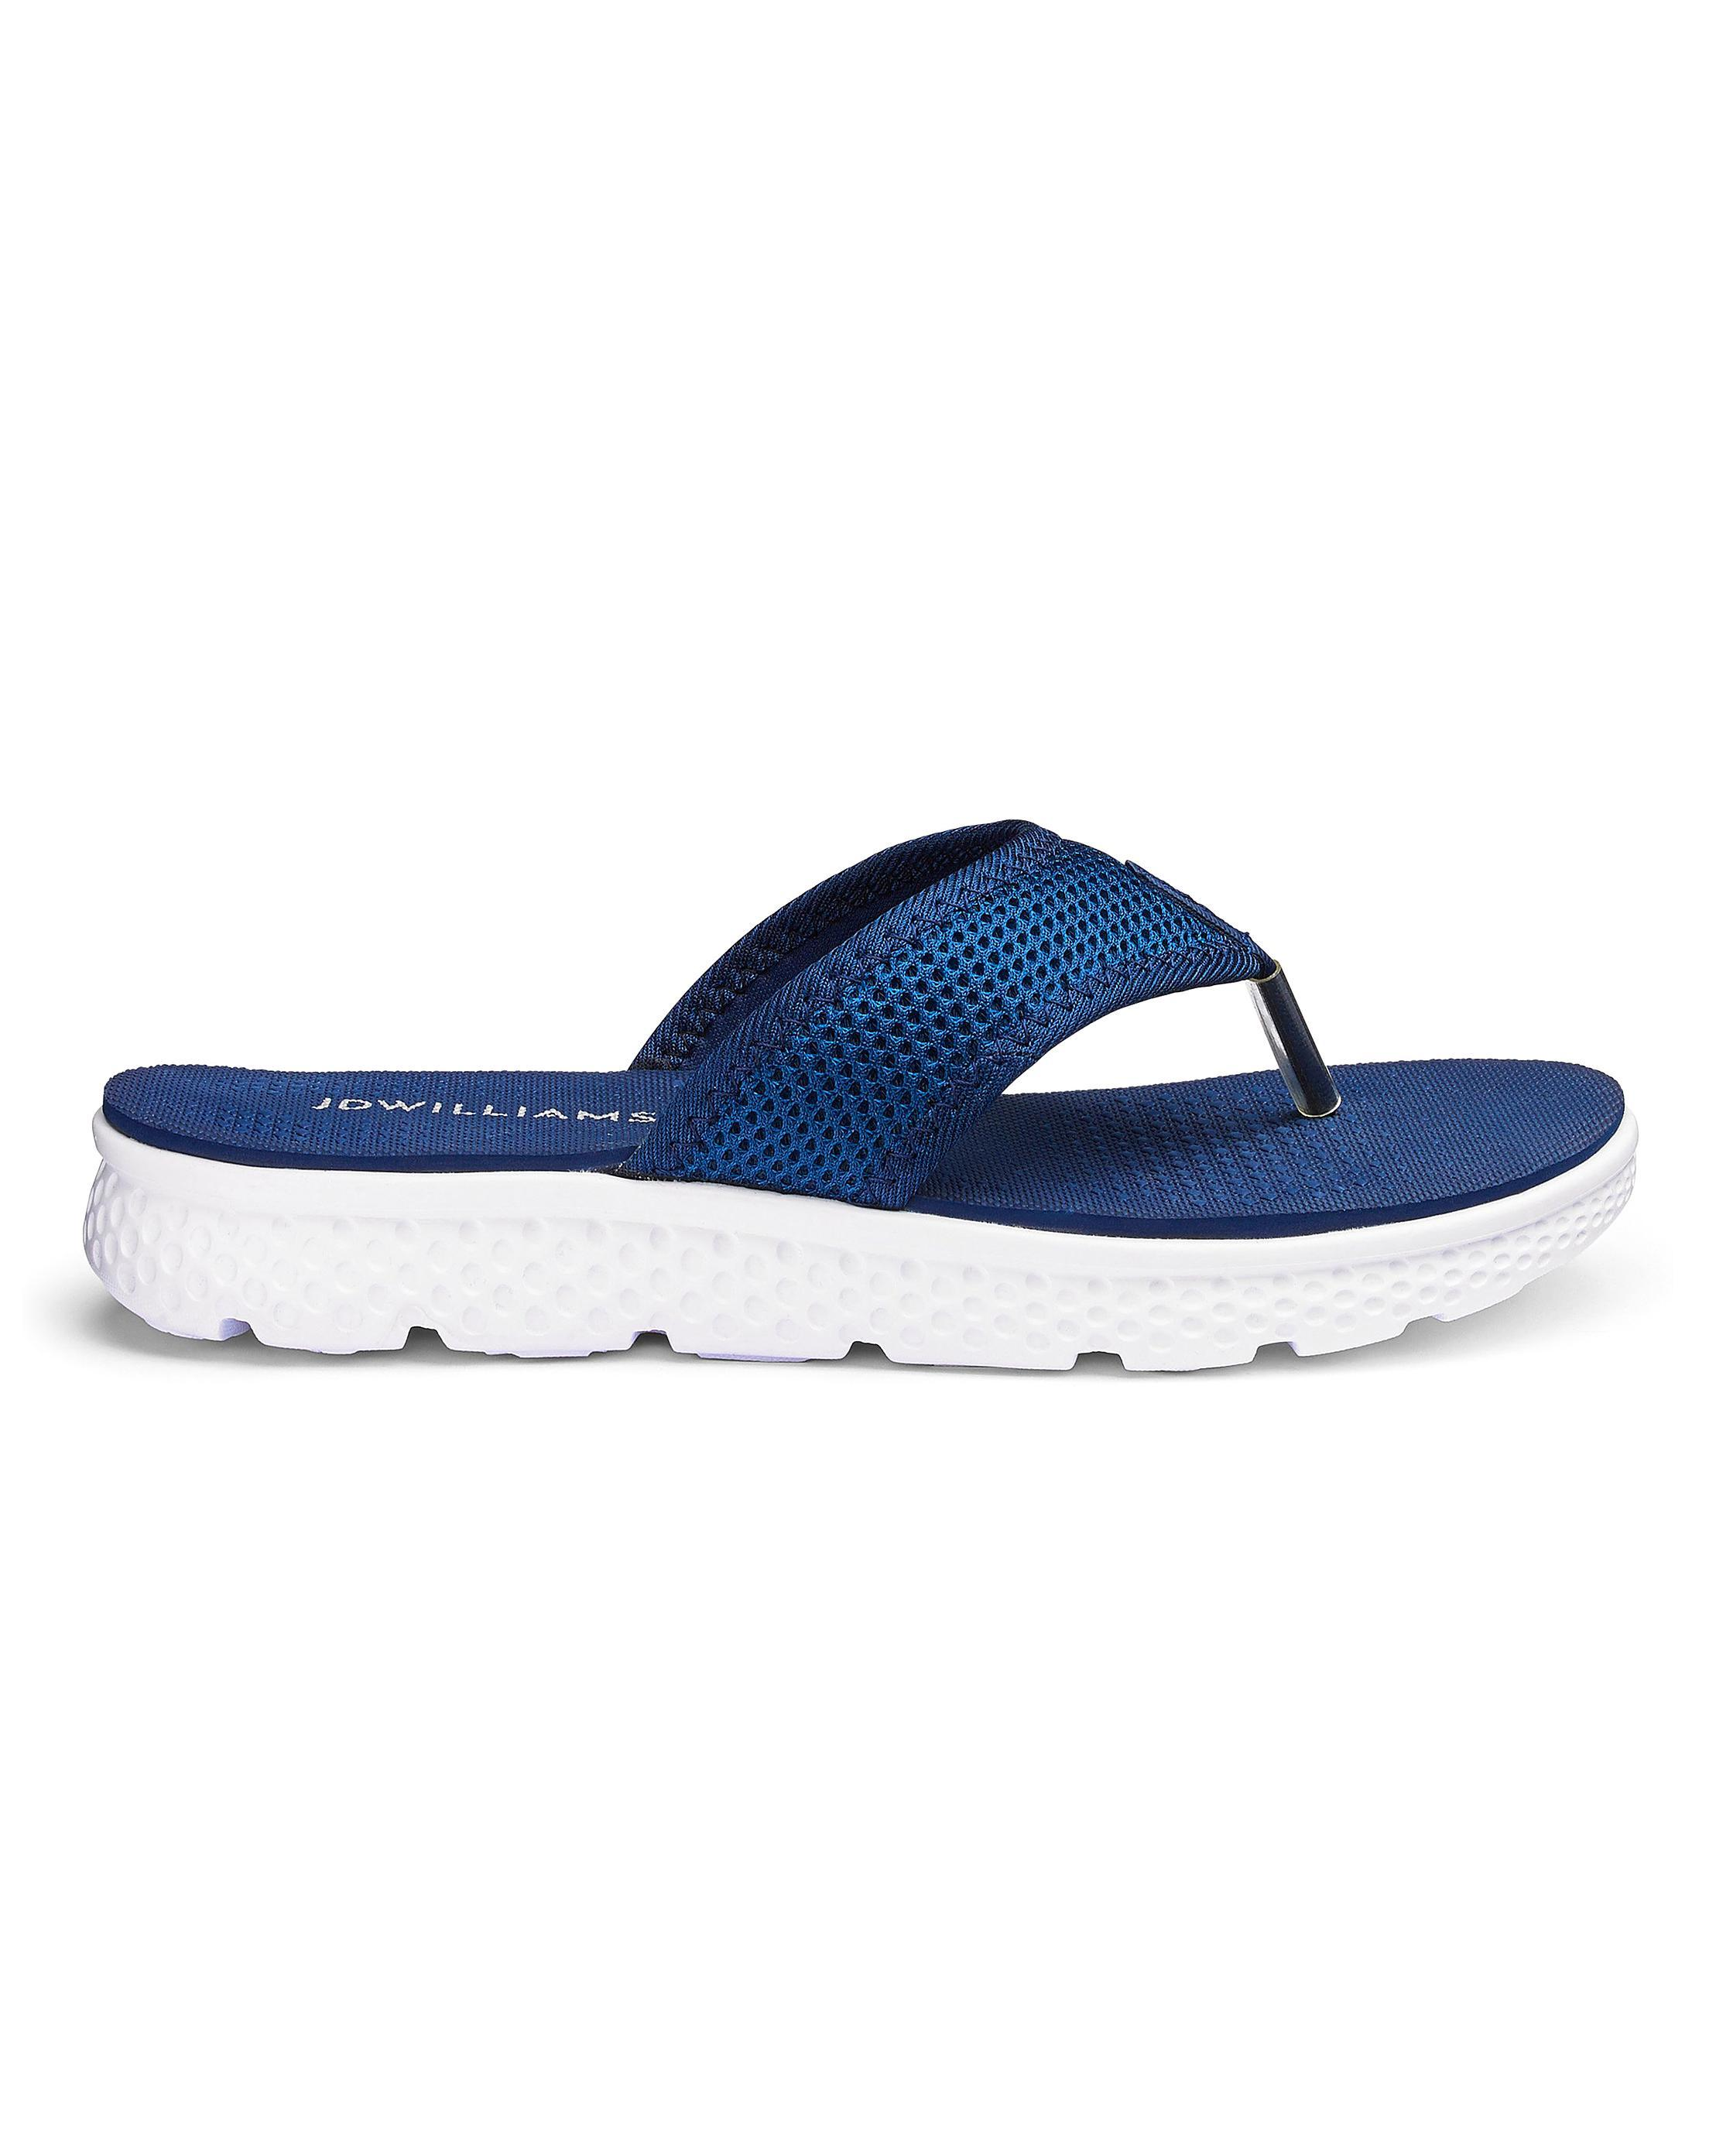 4e2c15582c8ae Lyst - Simply Be Toe Post Leisure Mule Sandals in Blue